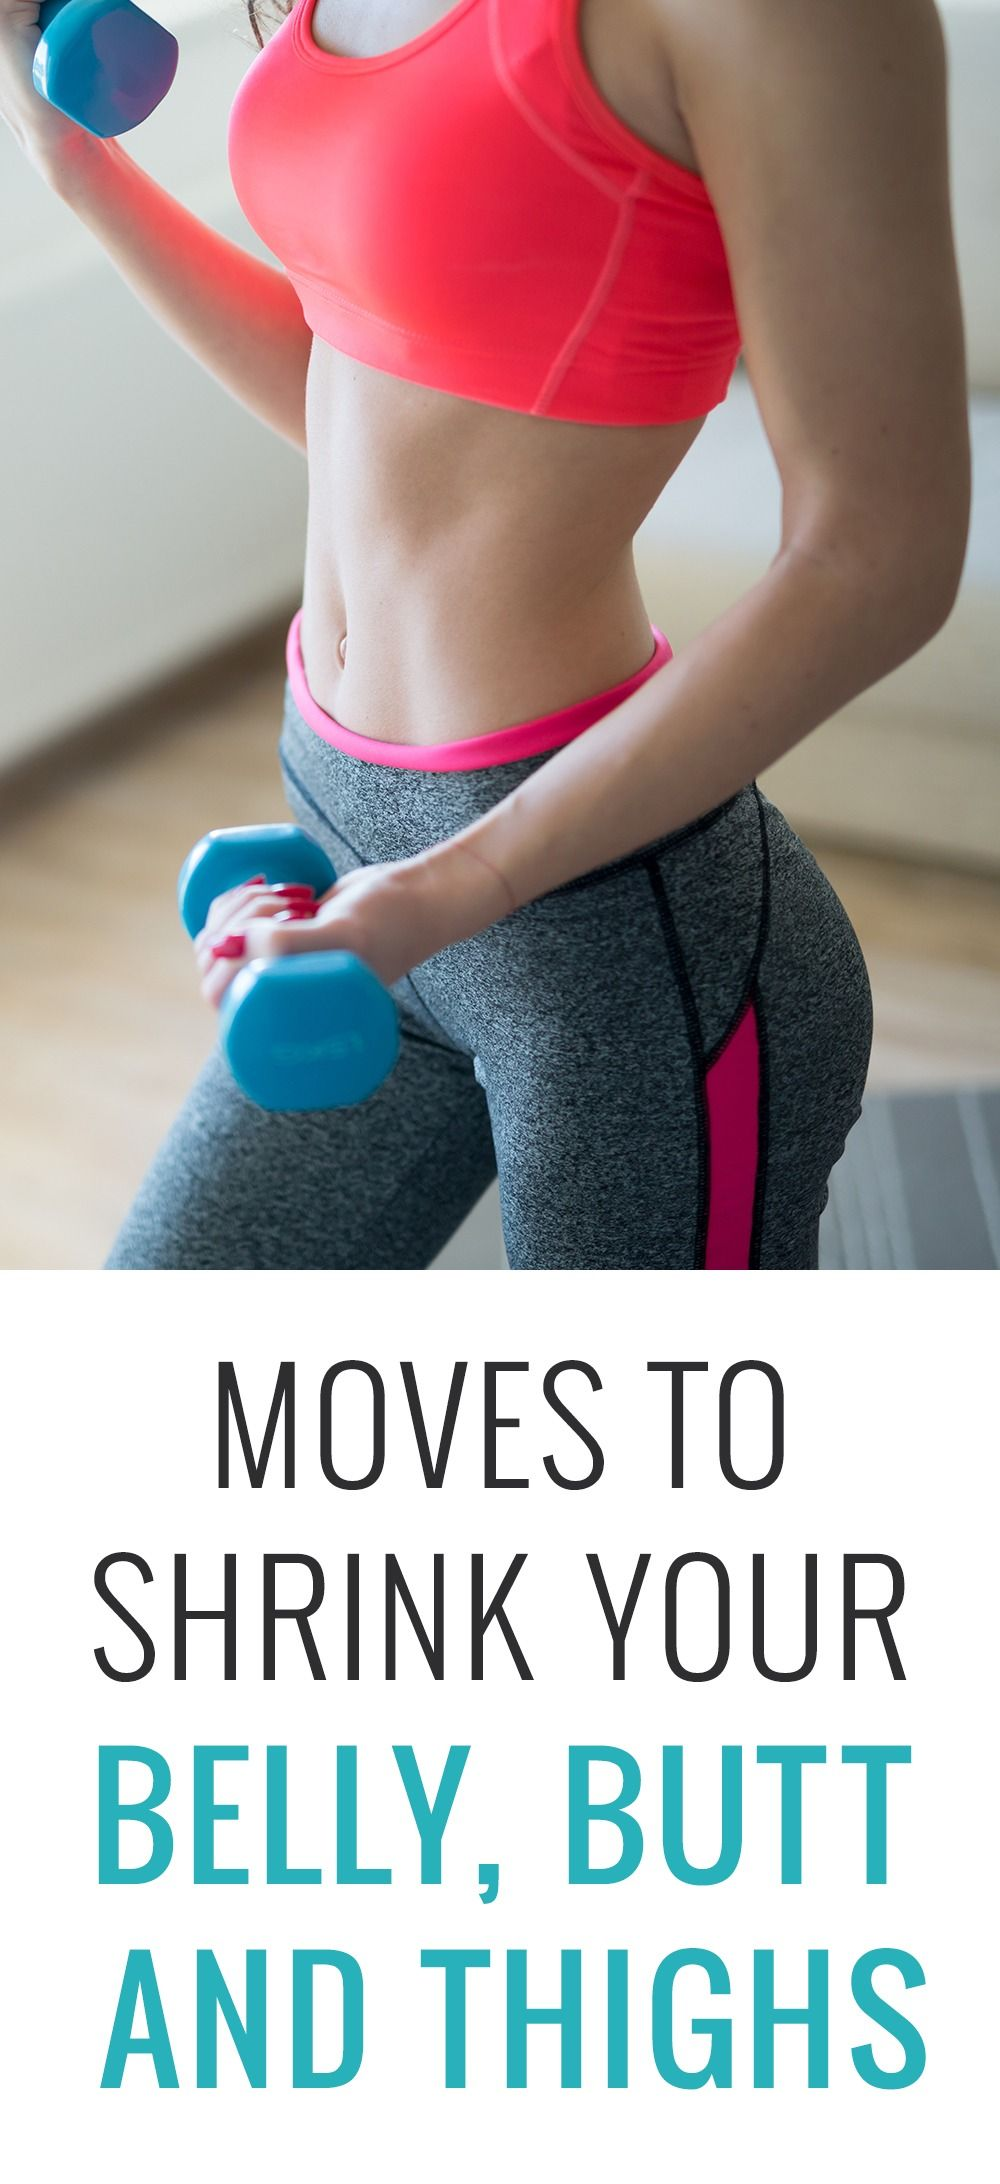 Moves to shrink your belly butt and thighs exercises pinterest